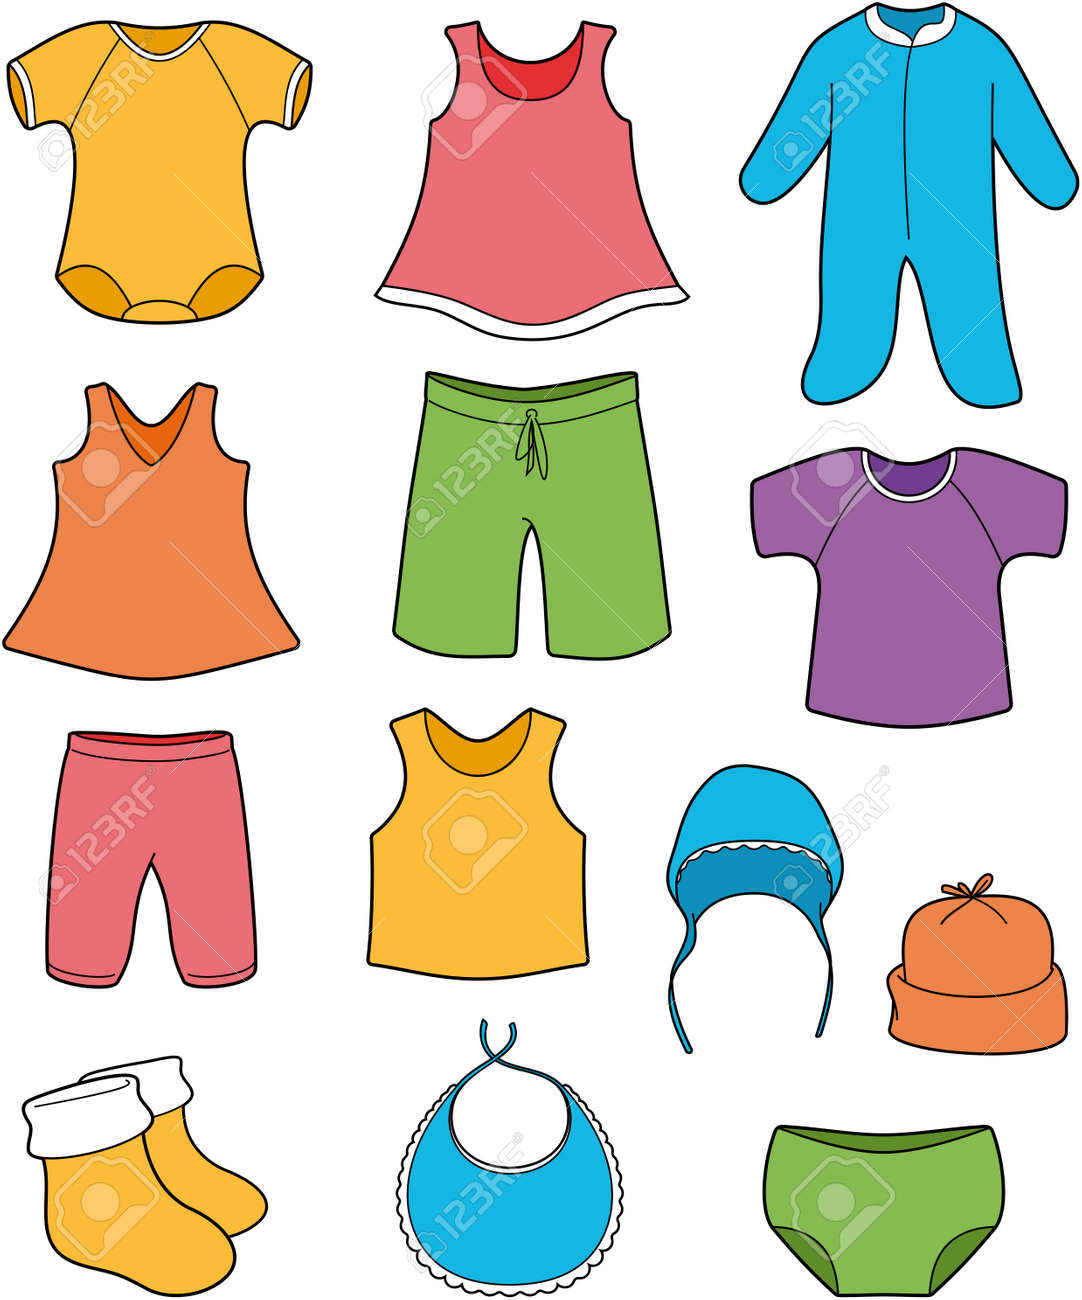 baby clothes vector color illustration royalty free cliparts